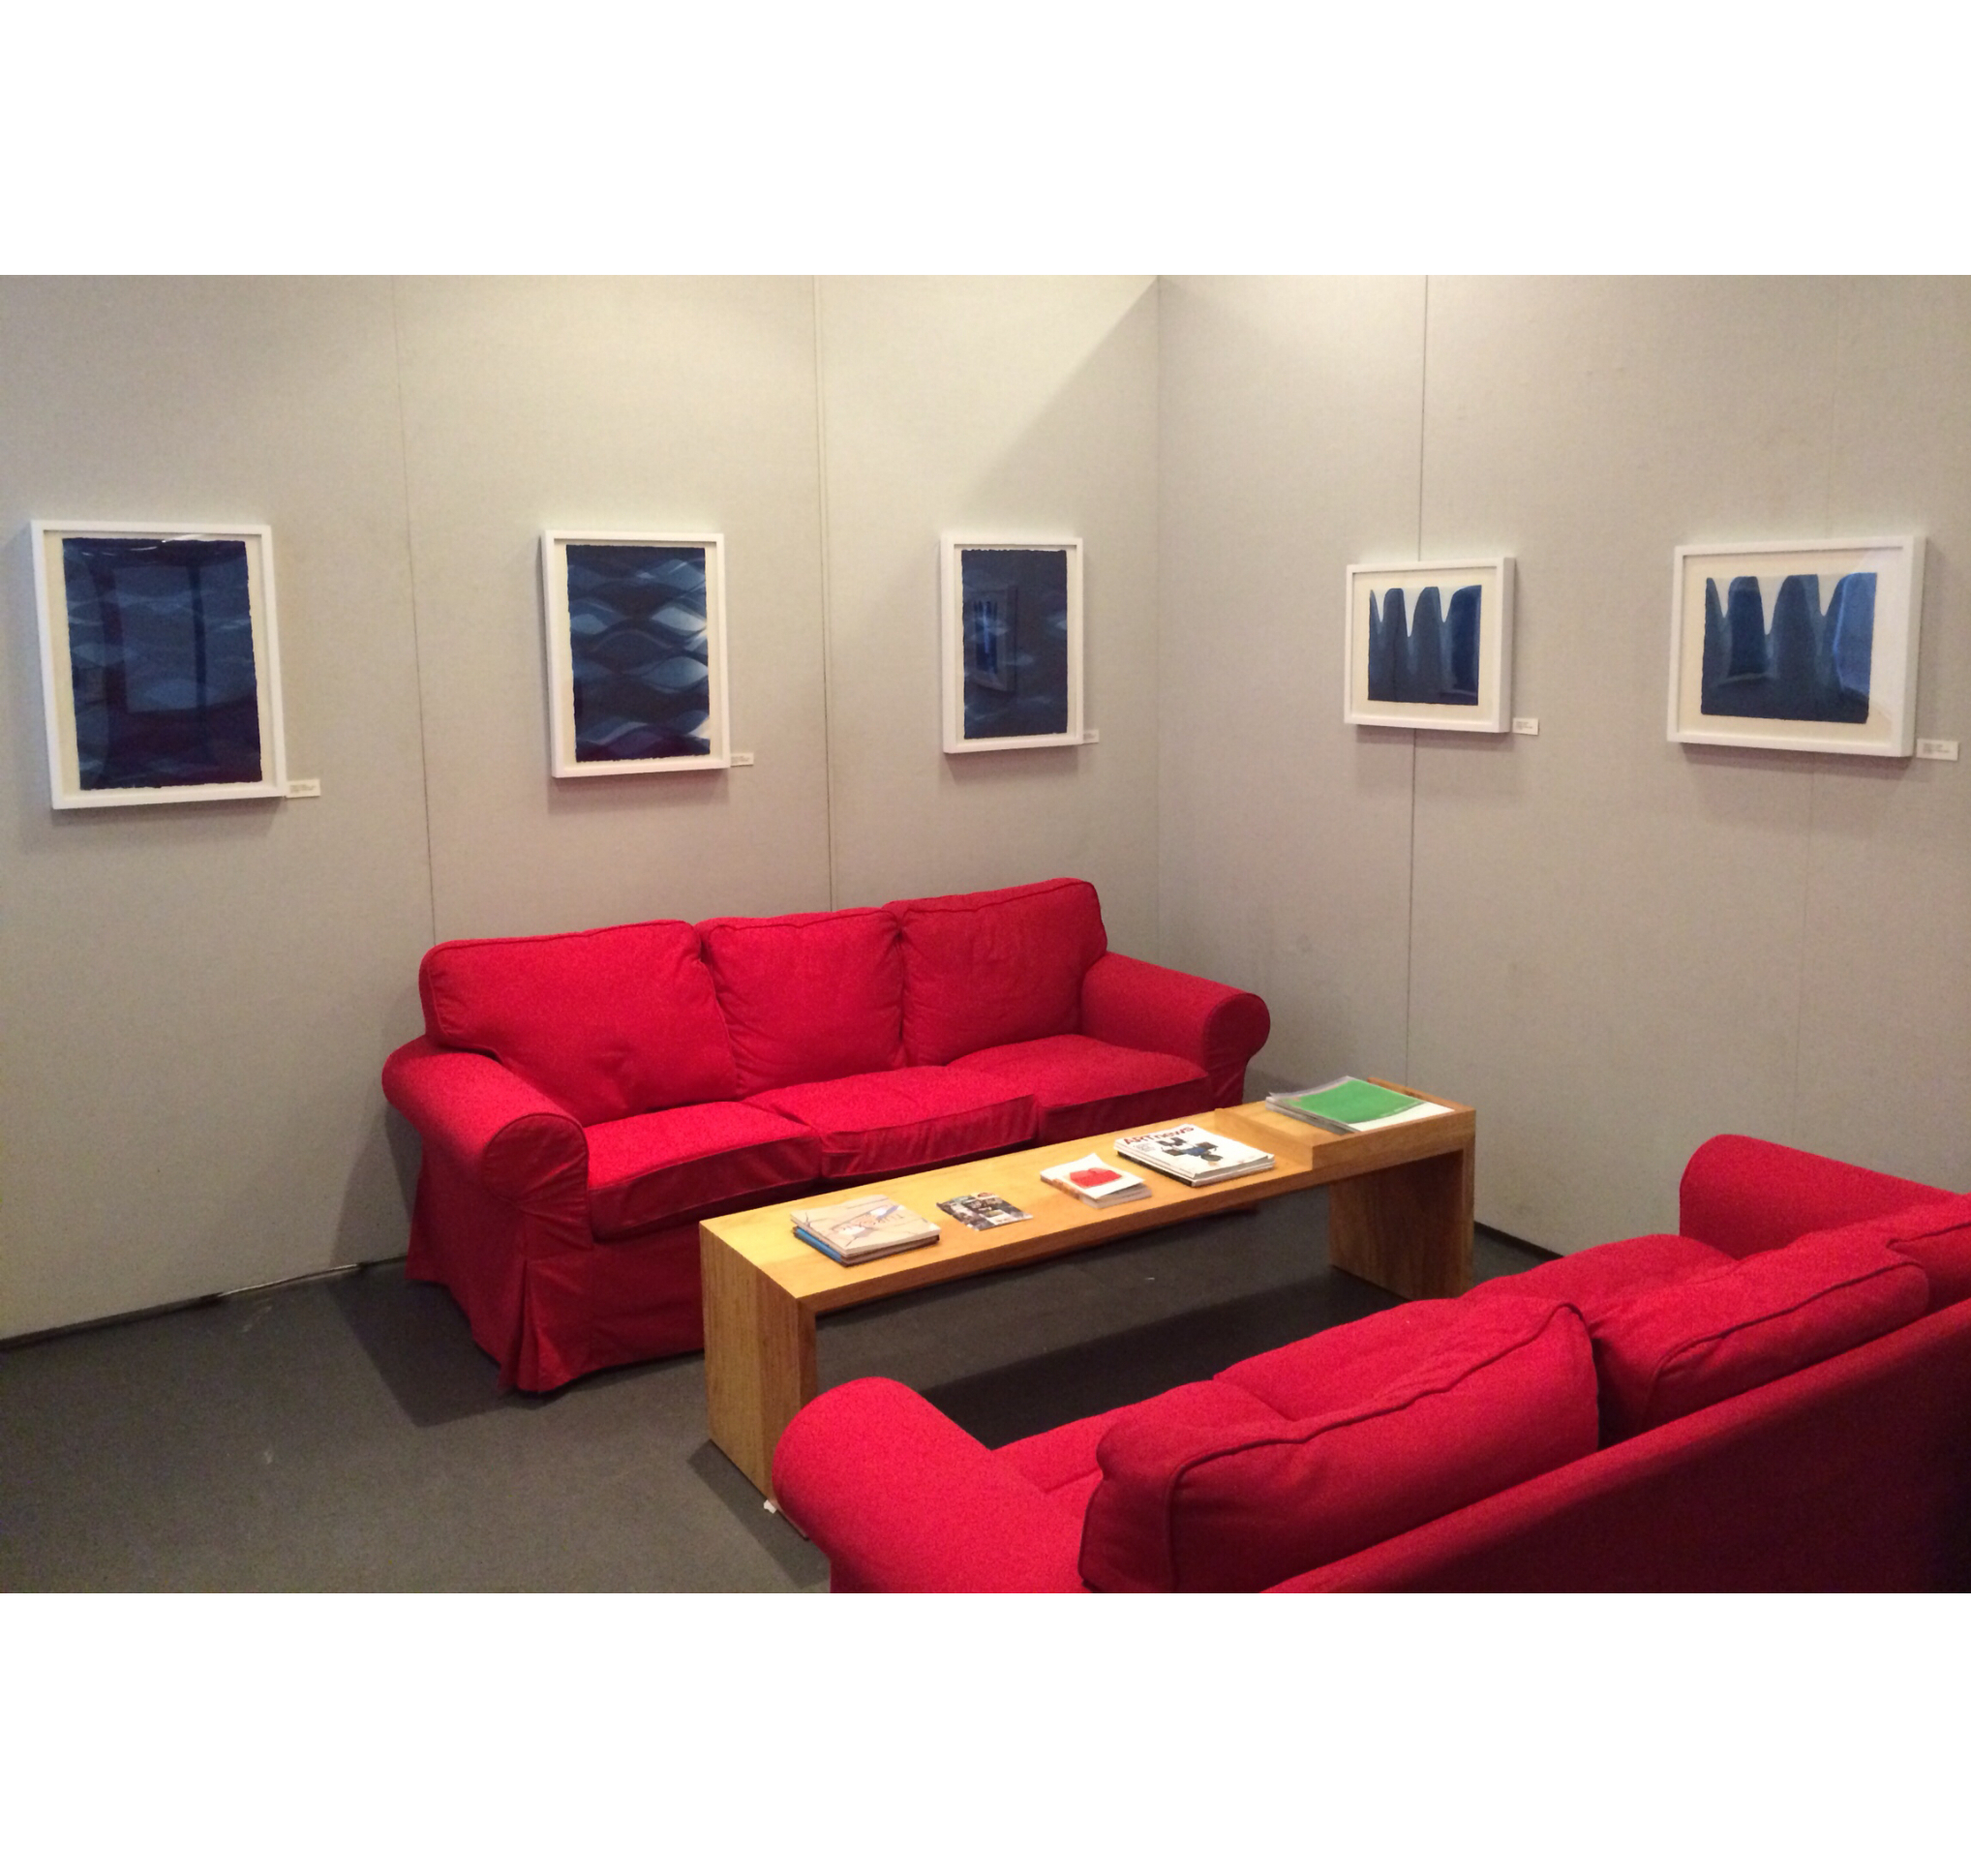 Currents & Waves in Project Space at National Academy